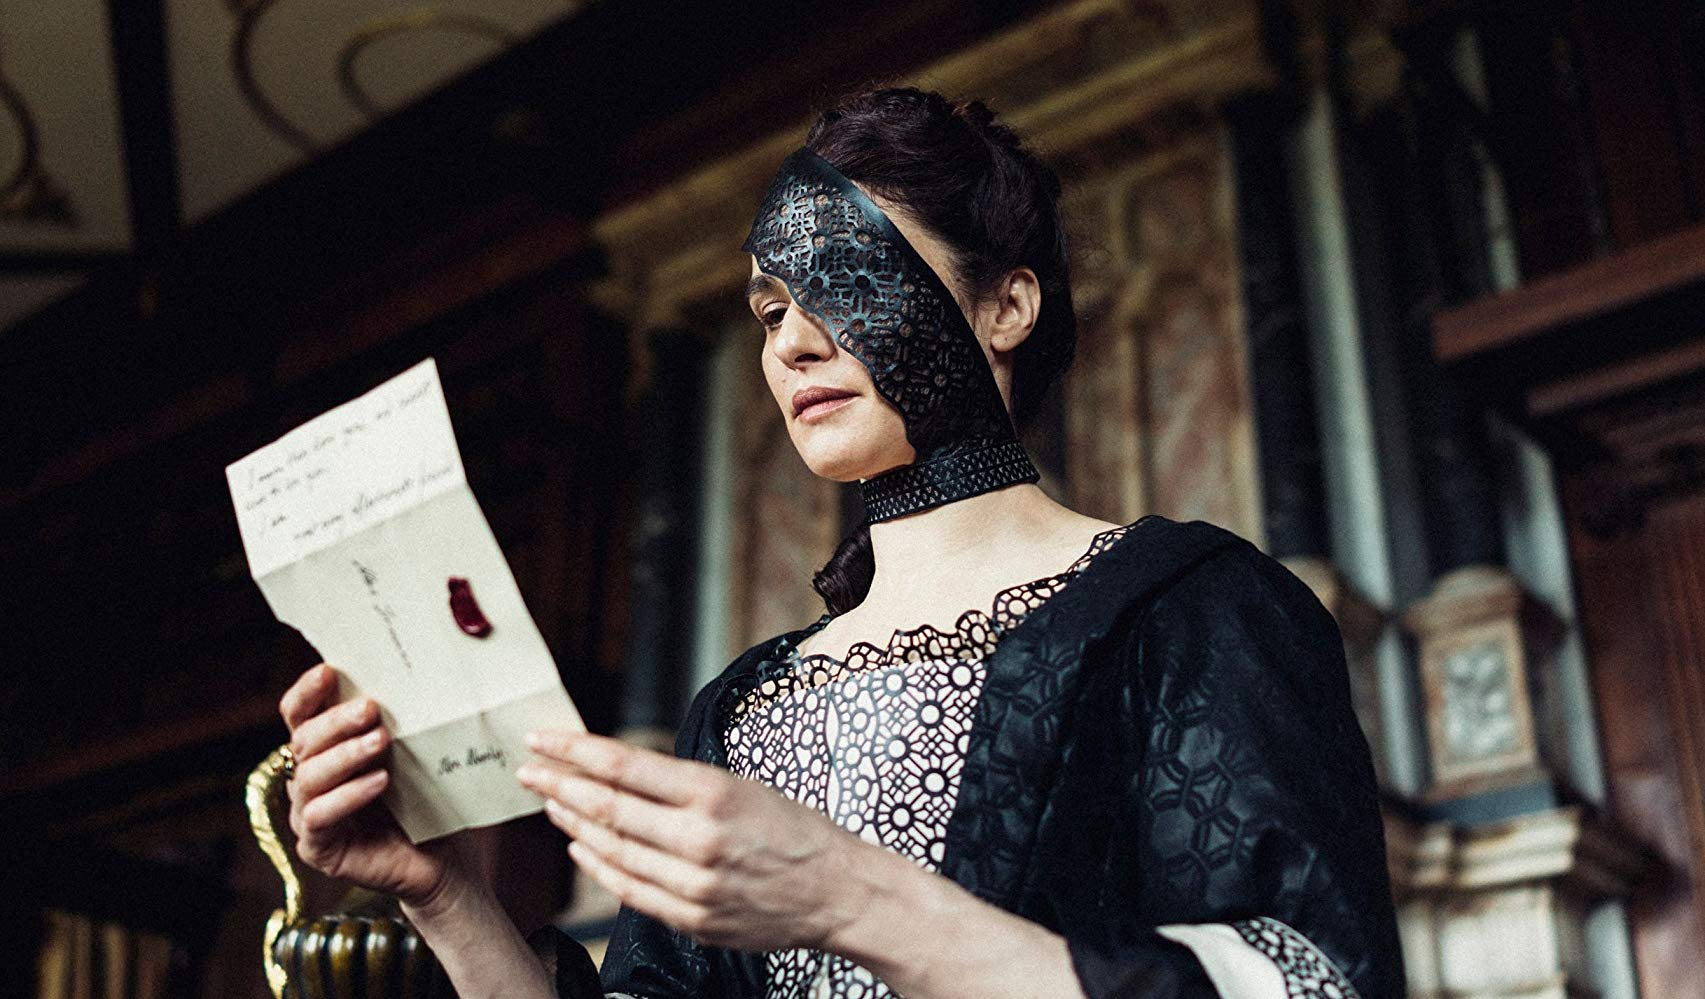 Rachael Weisz in the Favourite